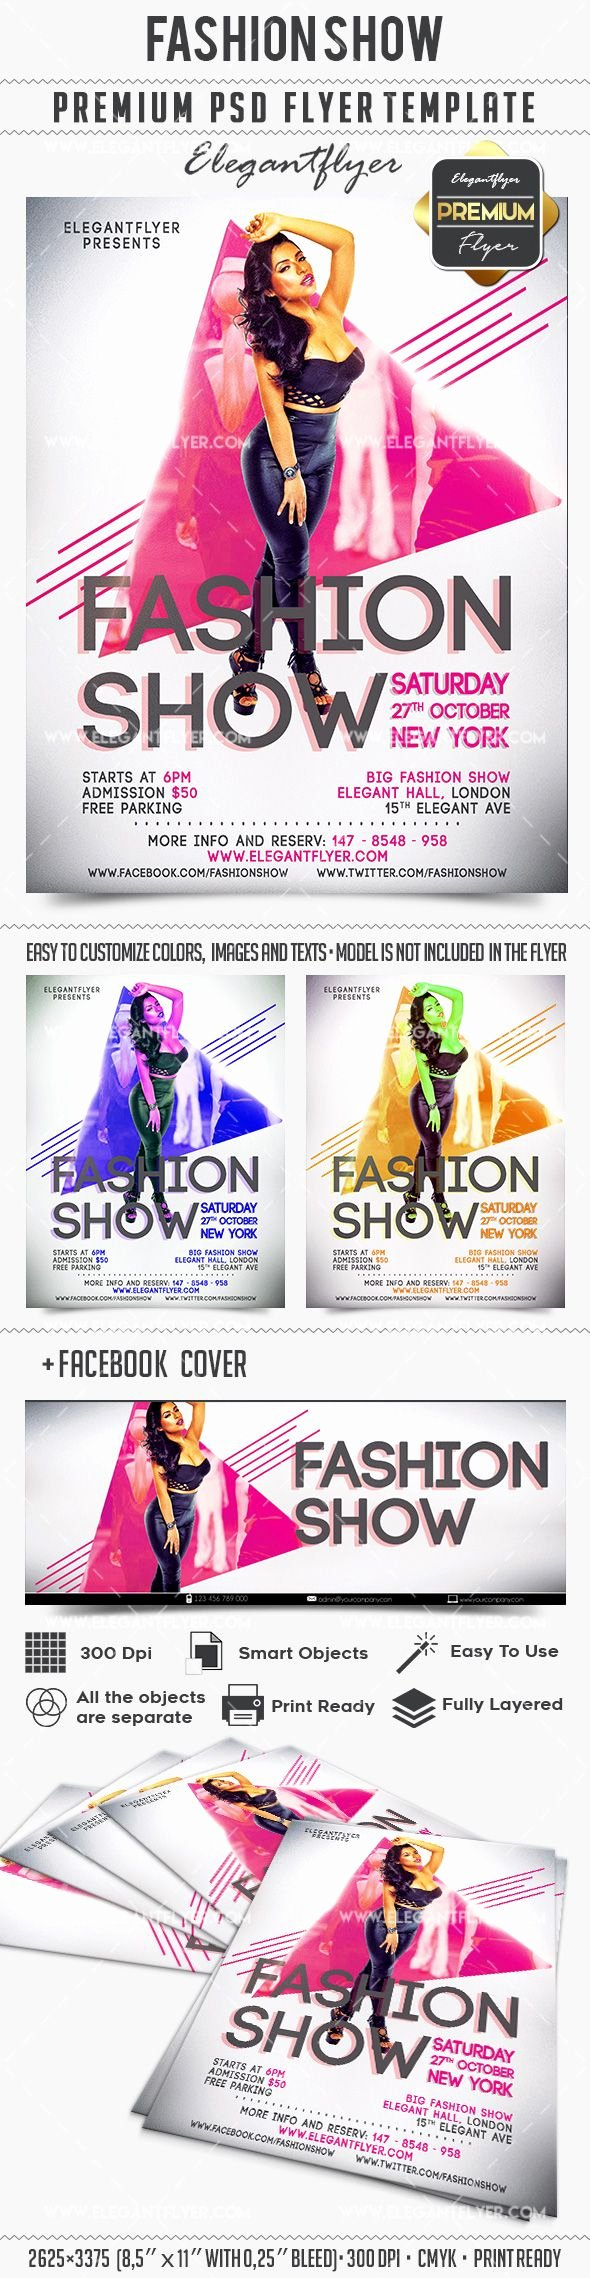 Fashion Show Invitation Template Luxury Fashion Show Invitation Flyer Template – by Elegantflyer